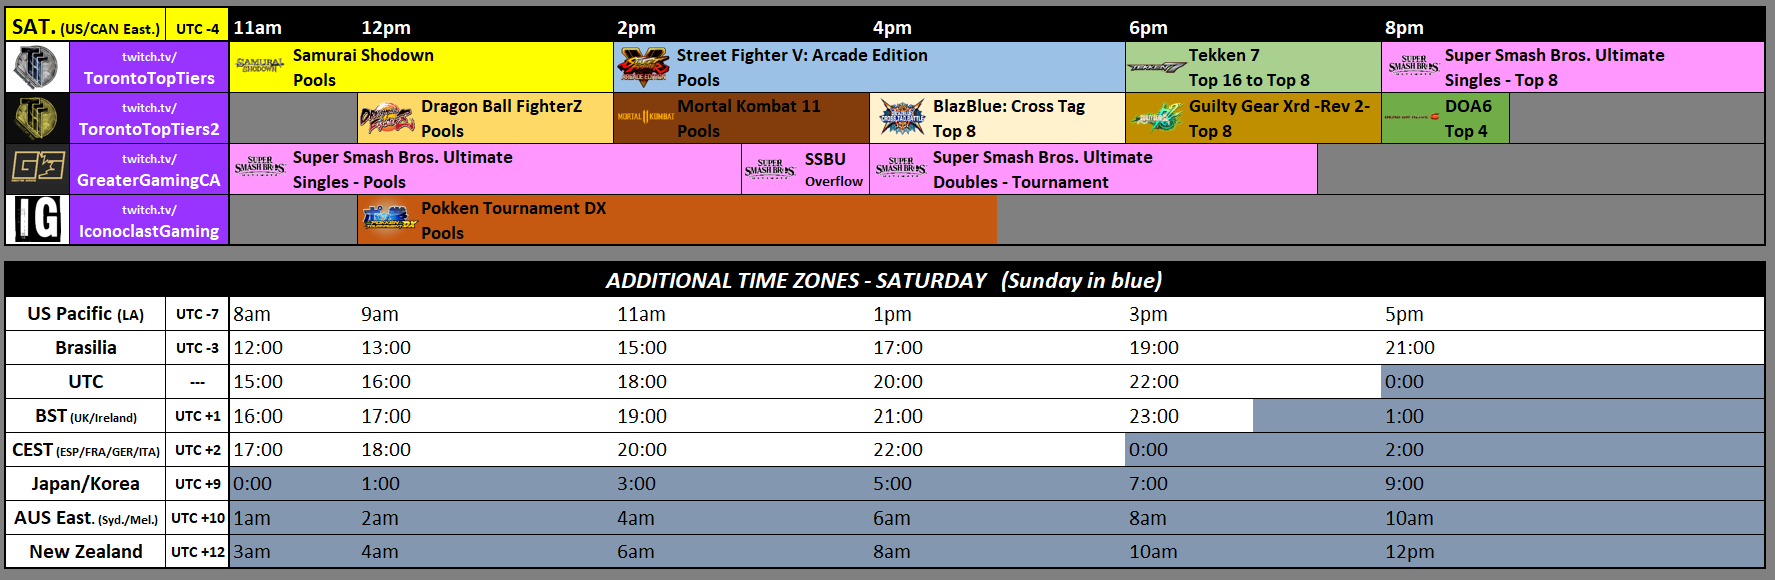 Toryuken 2019 Event Schedule 1 out of 2 image gallery